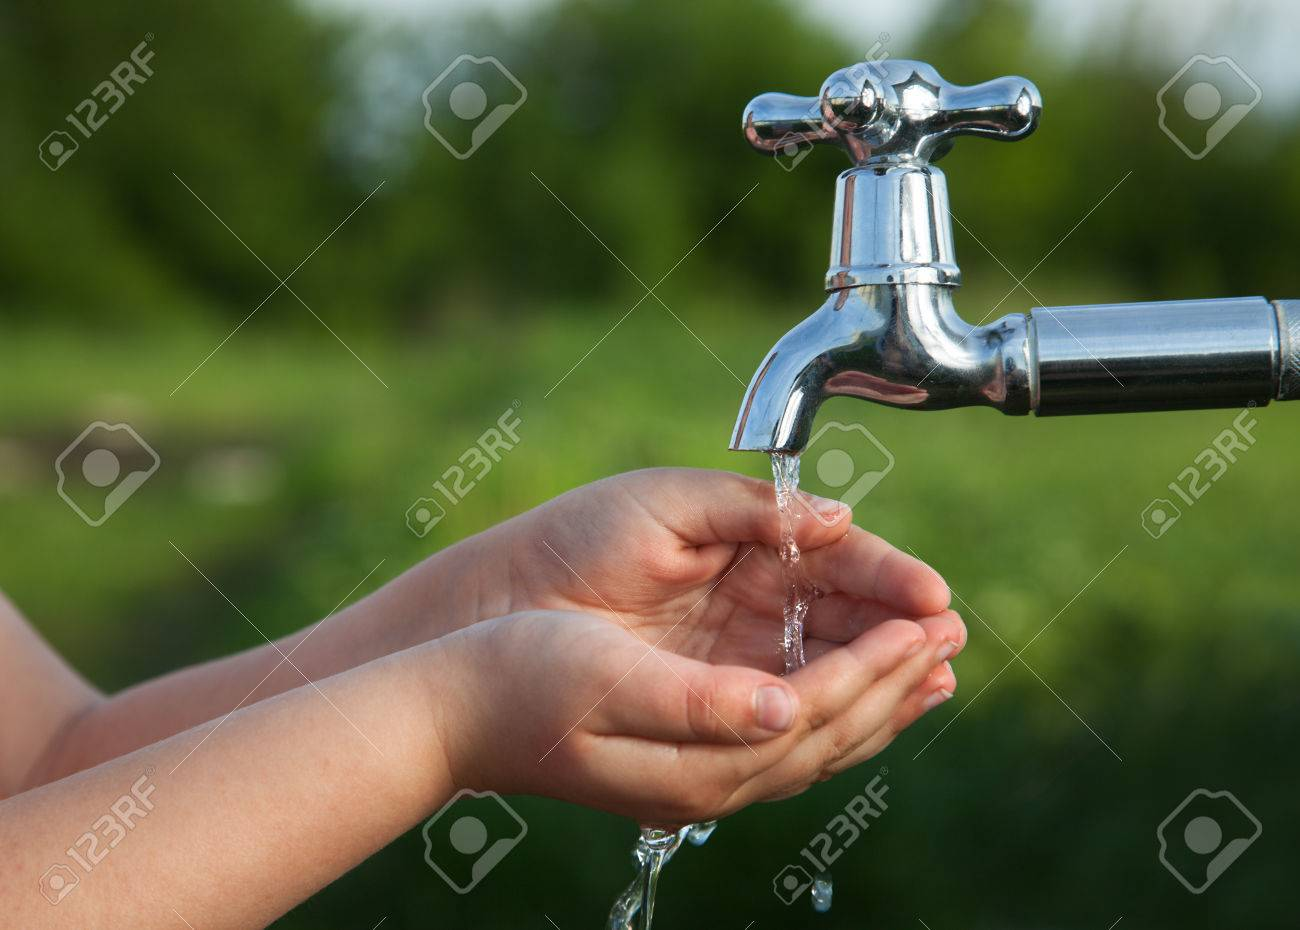 boy washes his hand under the faucet in the garden - 58843692